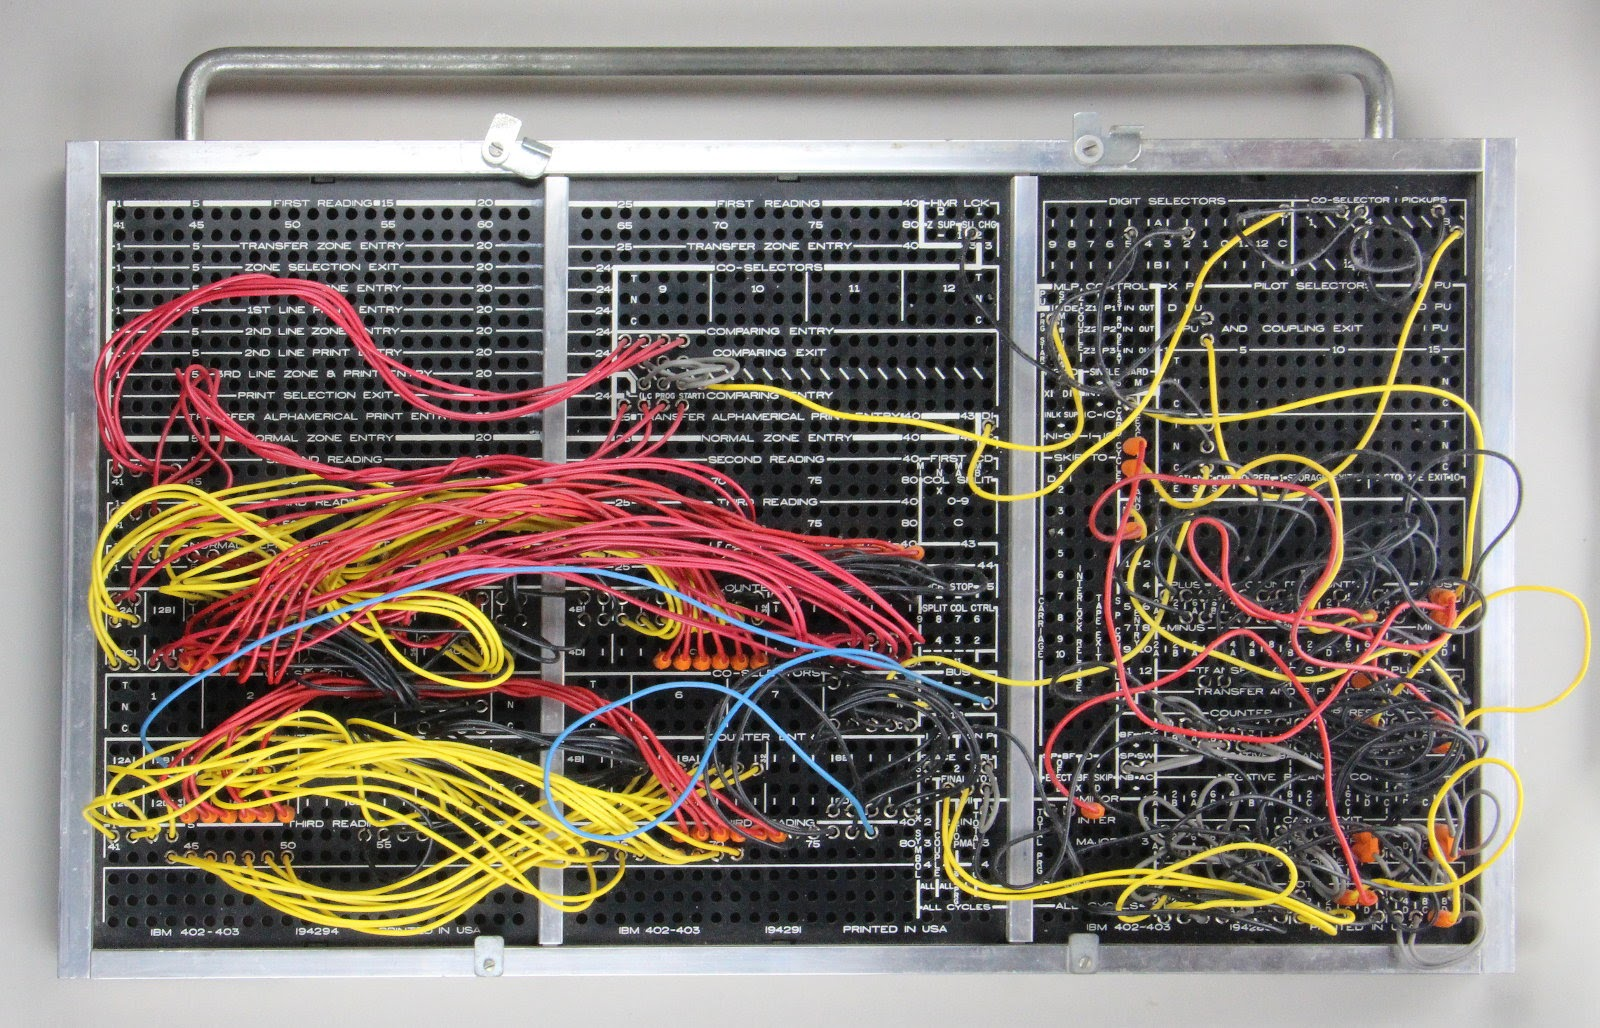 1950s plugboard for an ibm 403 implements tax deduction computation. board courtesy of carl claunch